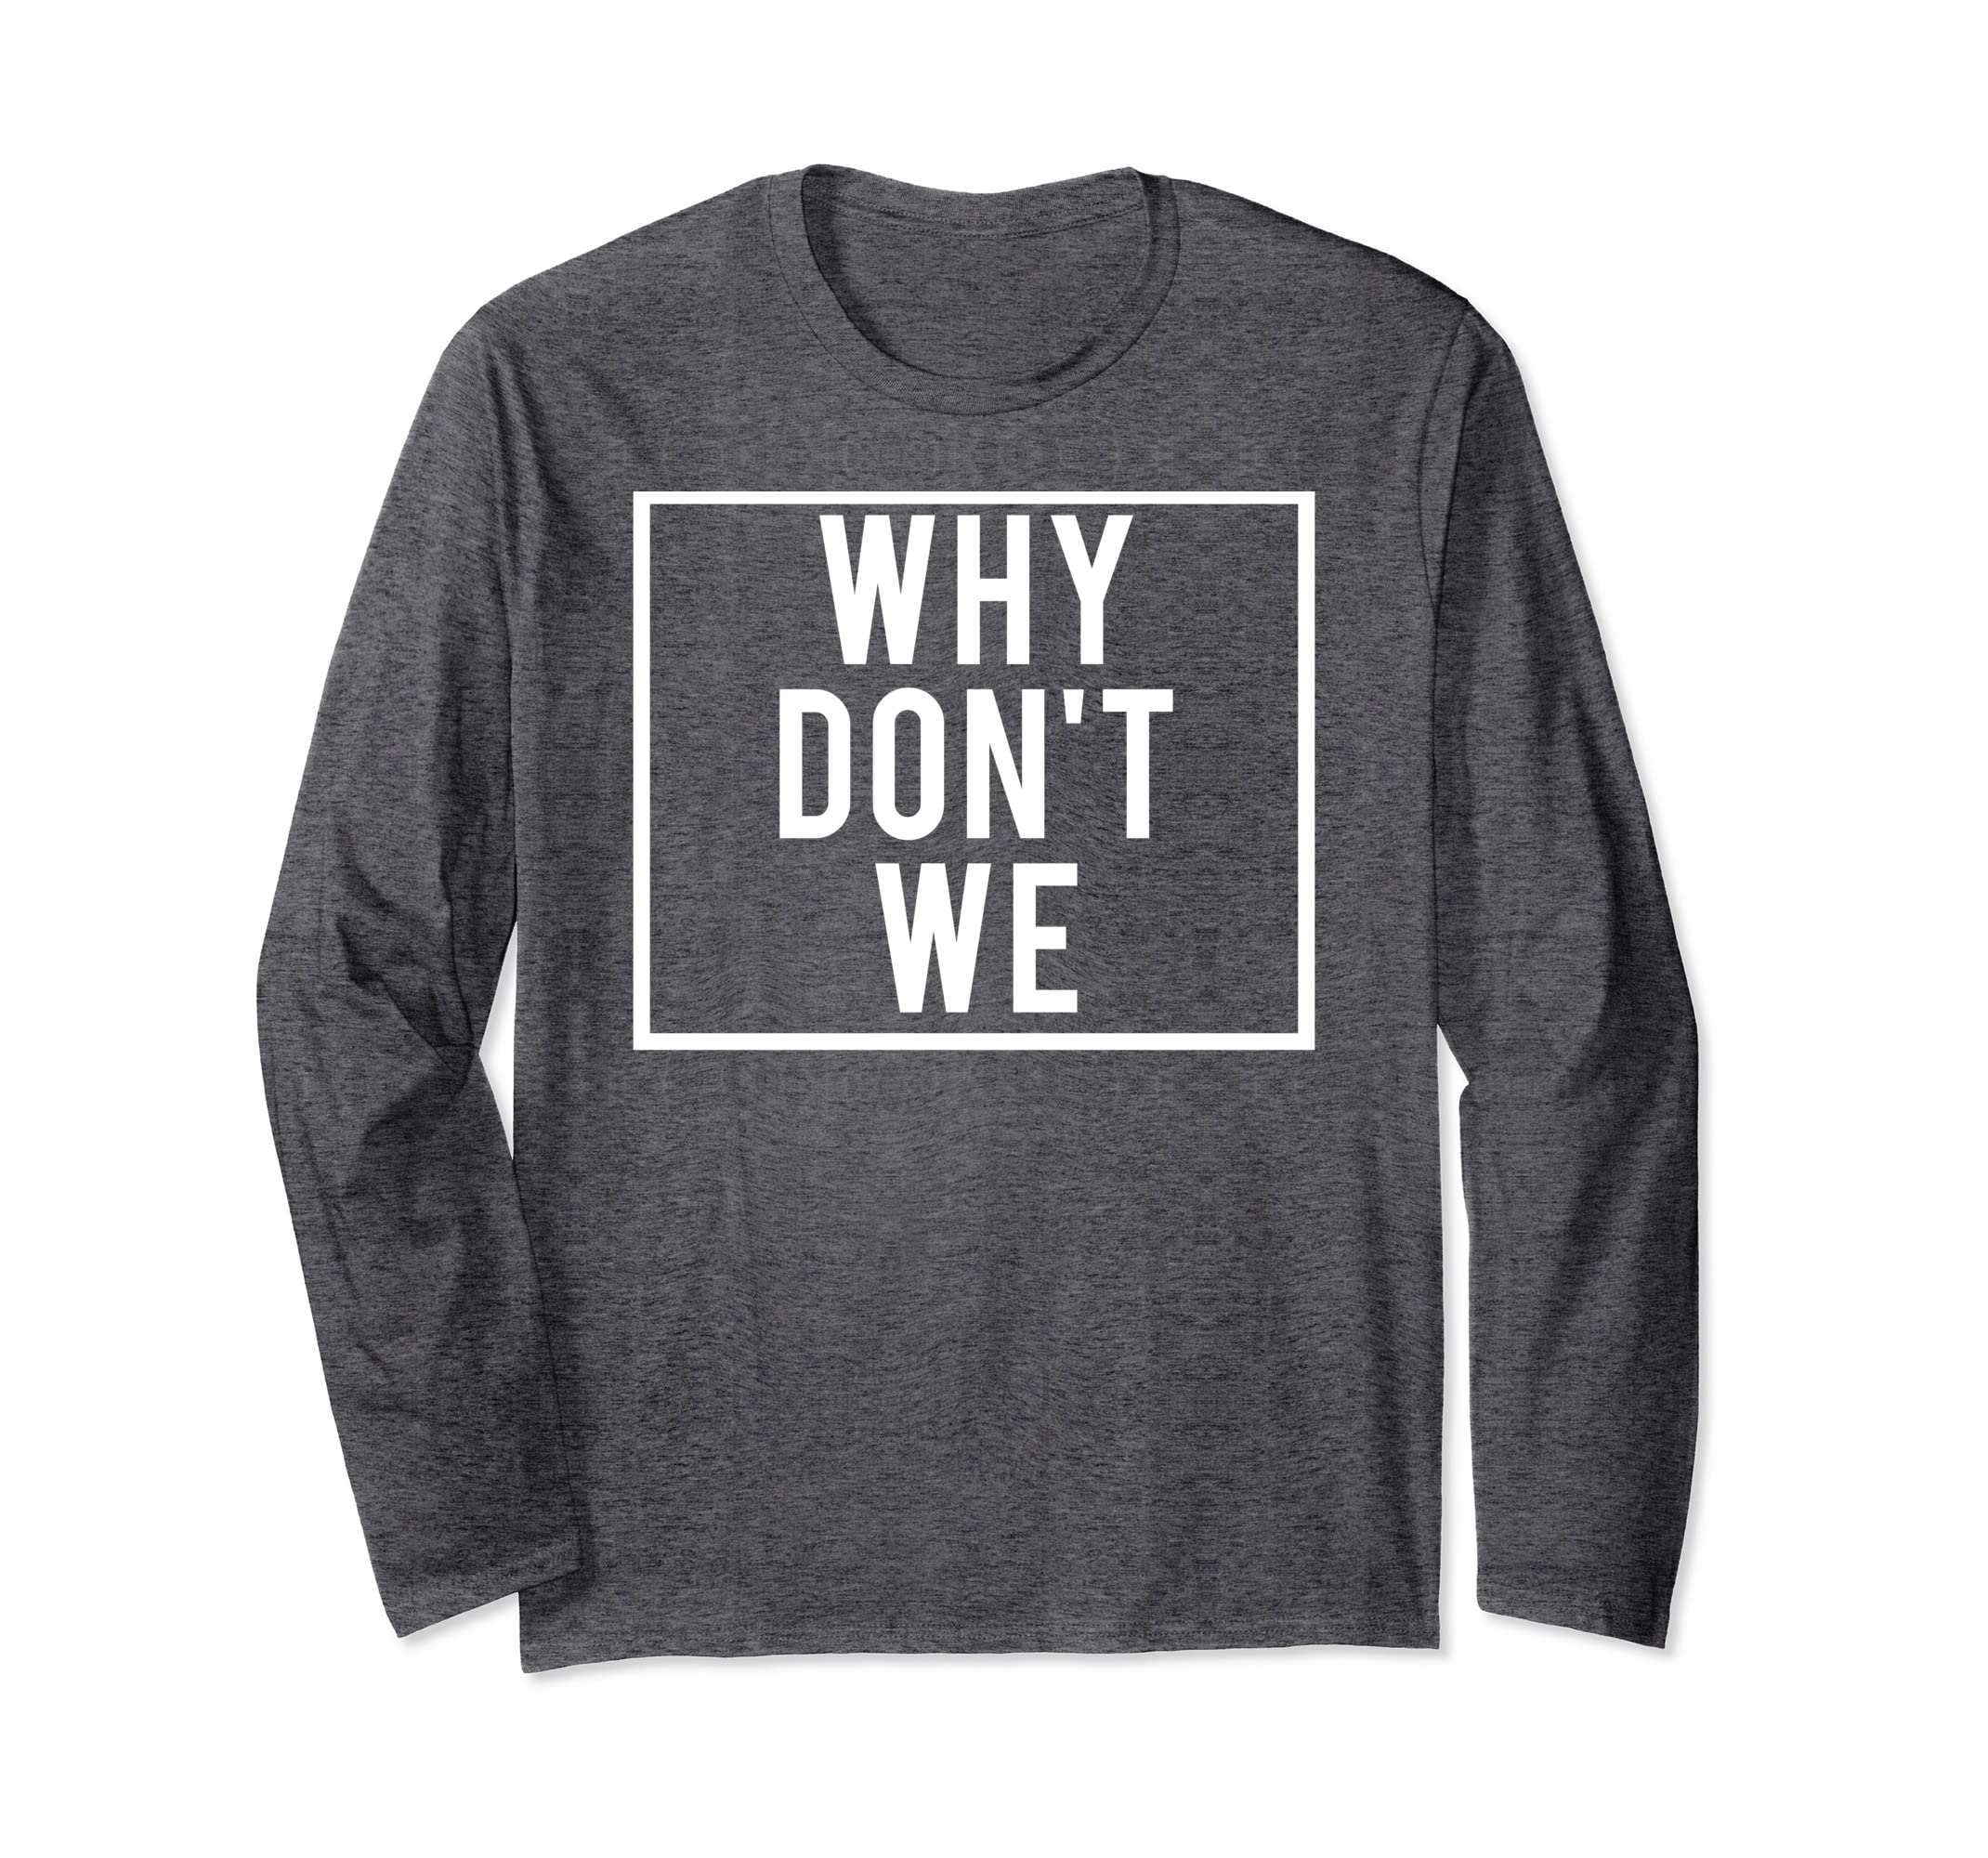 d14e7946d34a Amazon.com  Why don t we sweatshirt Funny cool cute sweater jumper shirt   Clothing